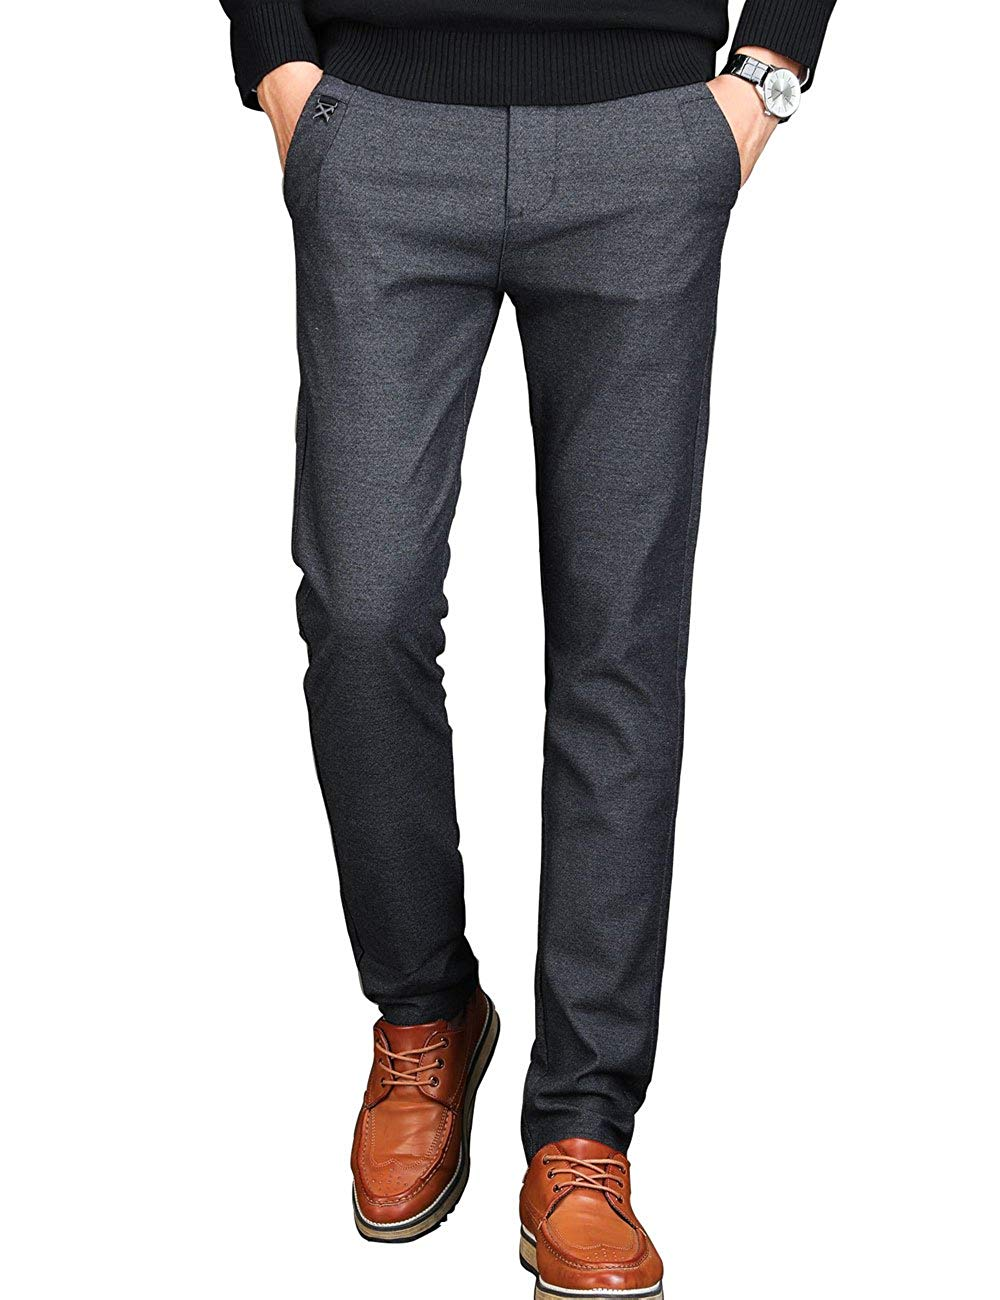 Men's Tapered Slim Fit Wrinkle-Free Casual Stretch Dress Pants,Classic Fit Flat Front Trousers